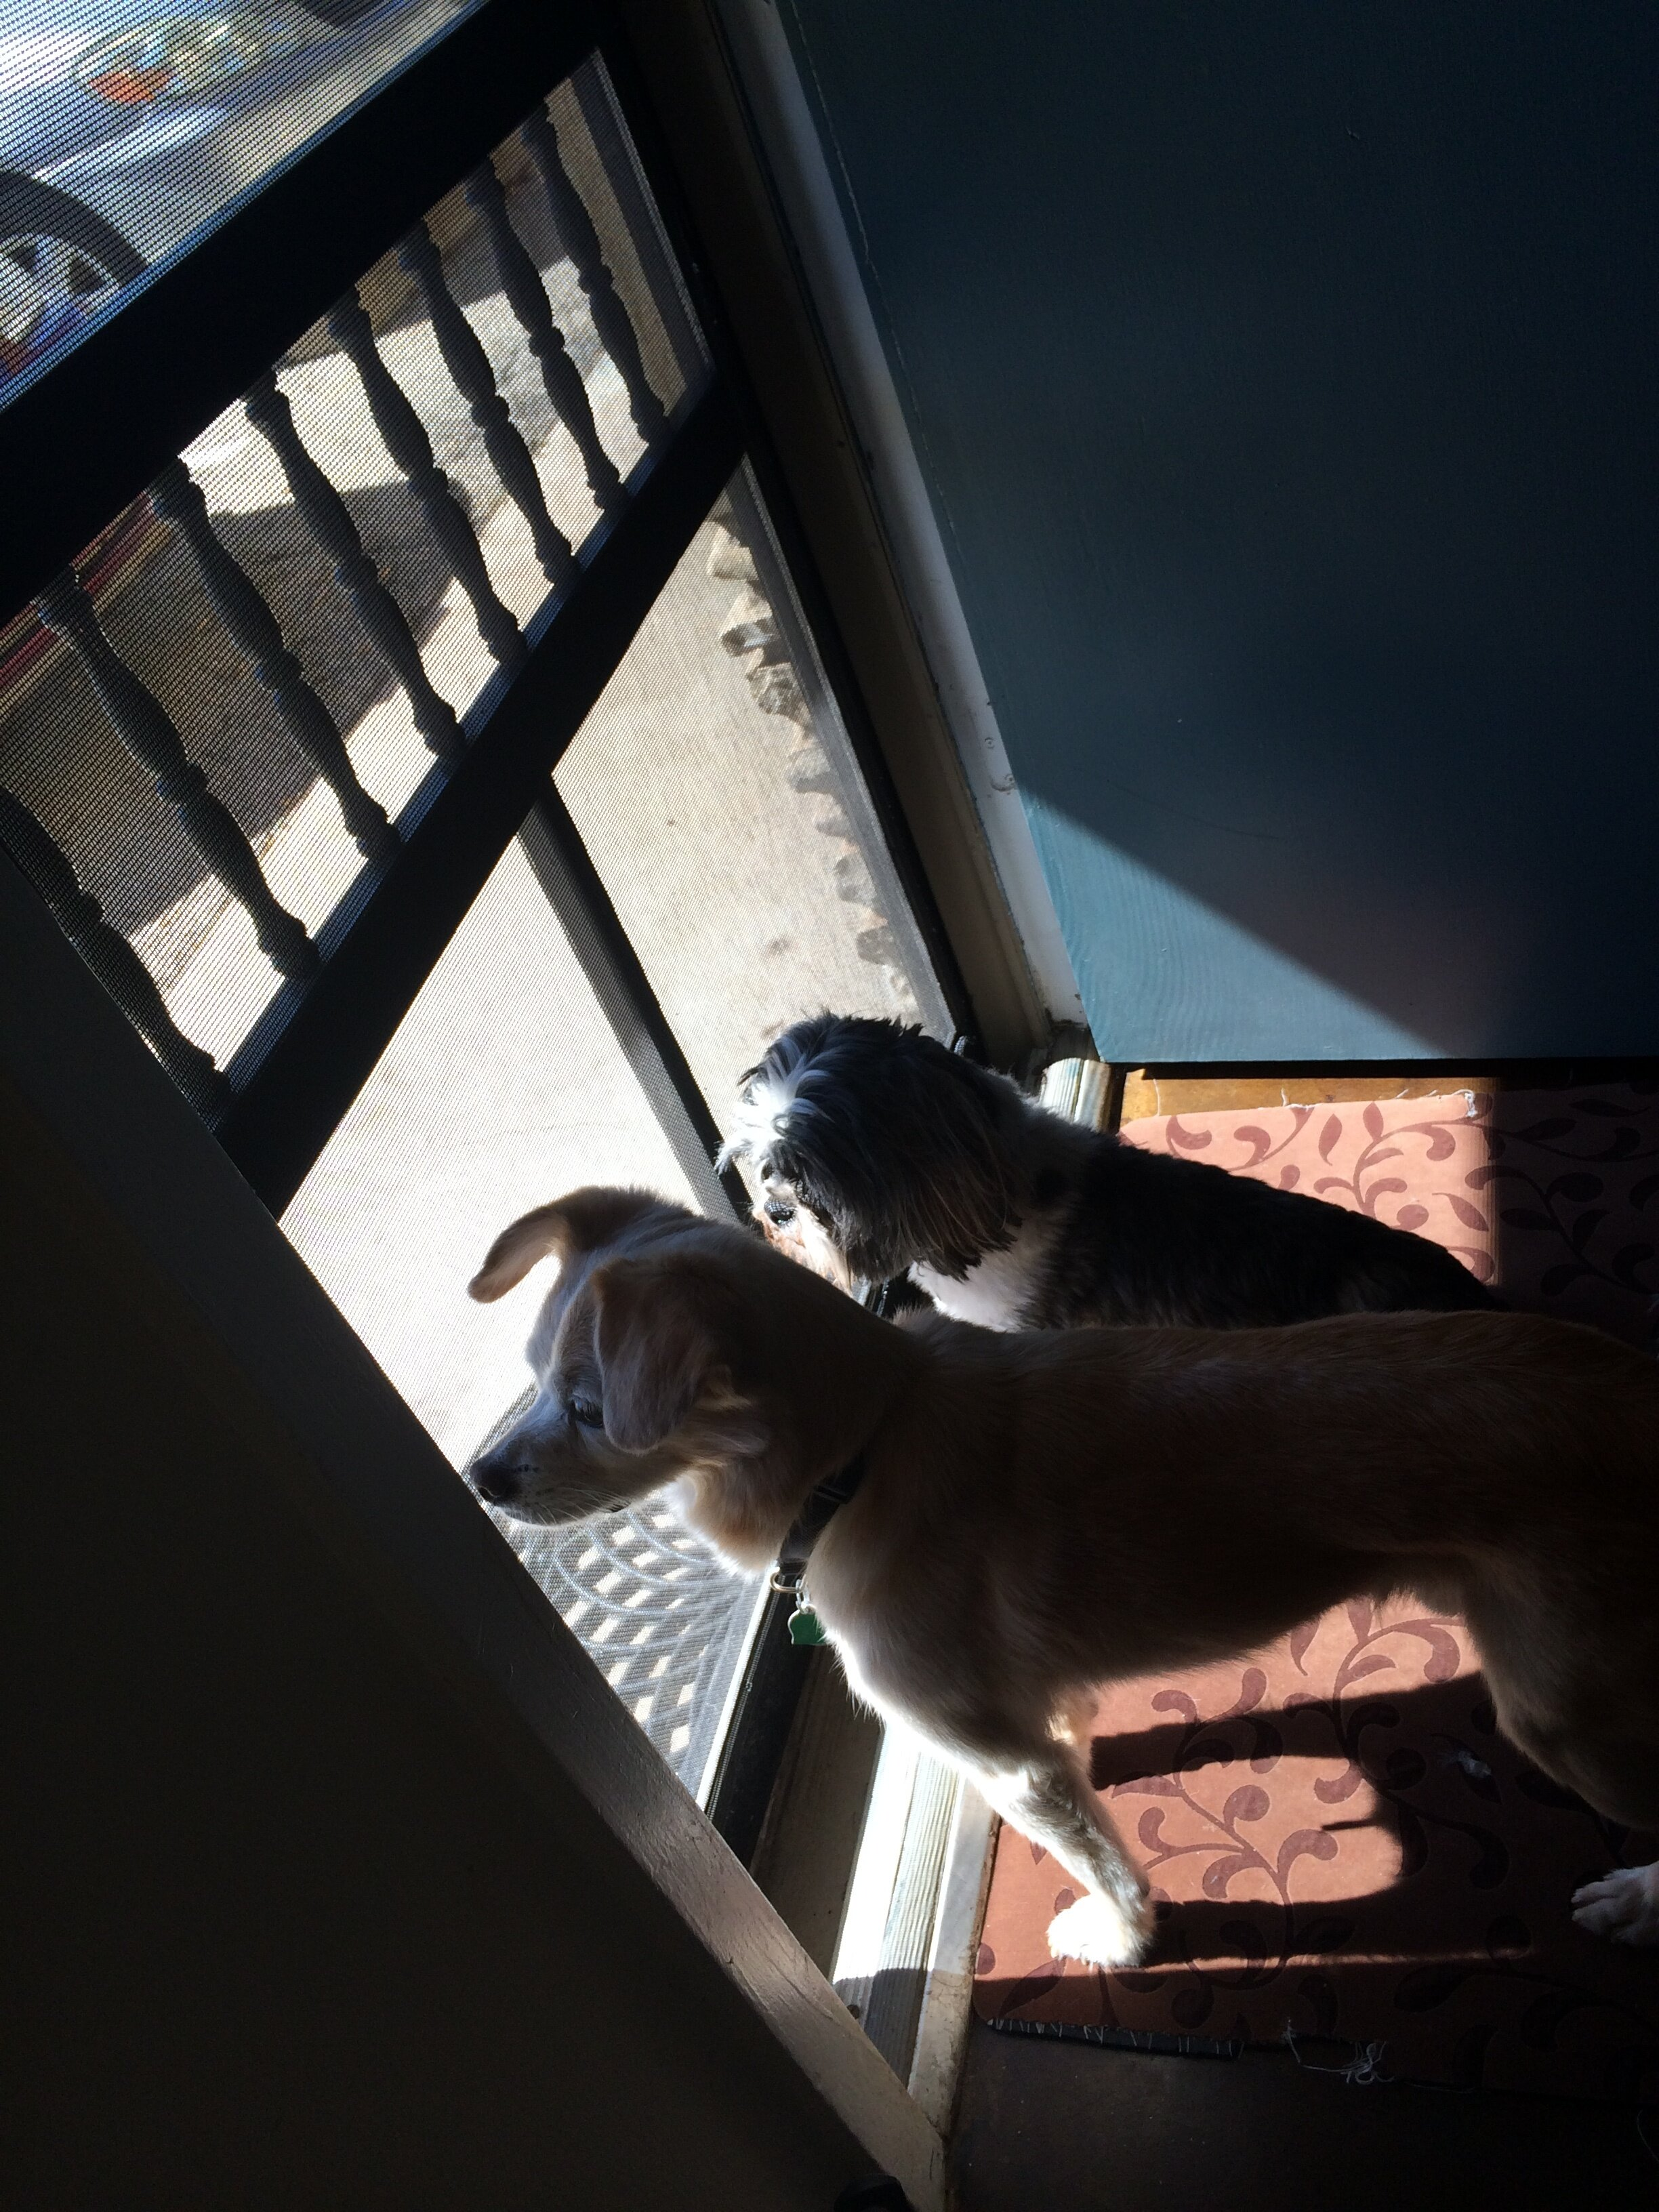 If I wanted to open the door, I would ask these sweet pups to back up so I could address my company and keep them calm